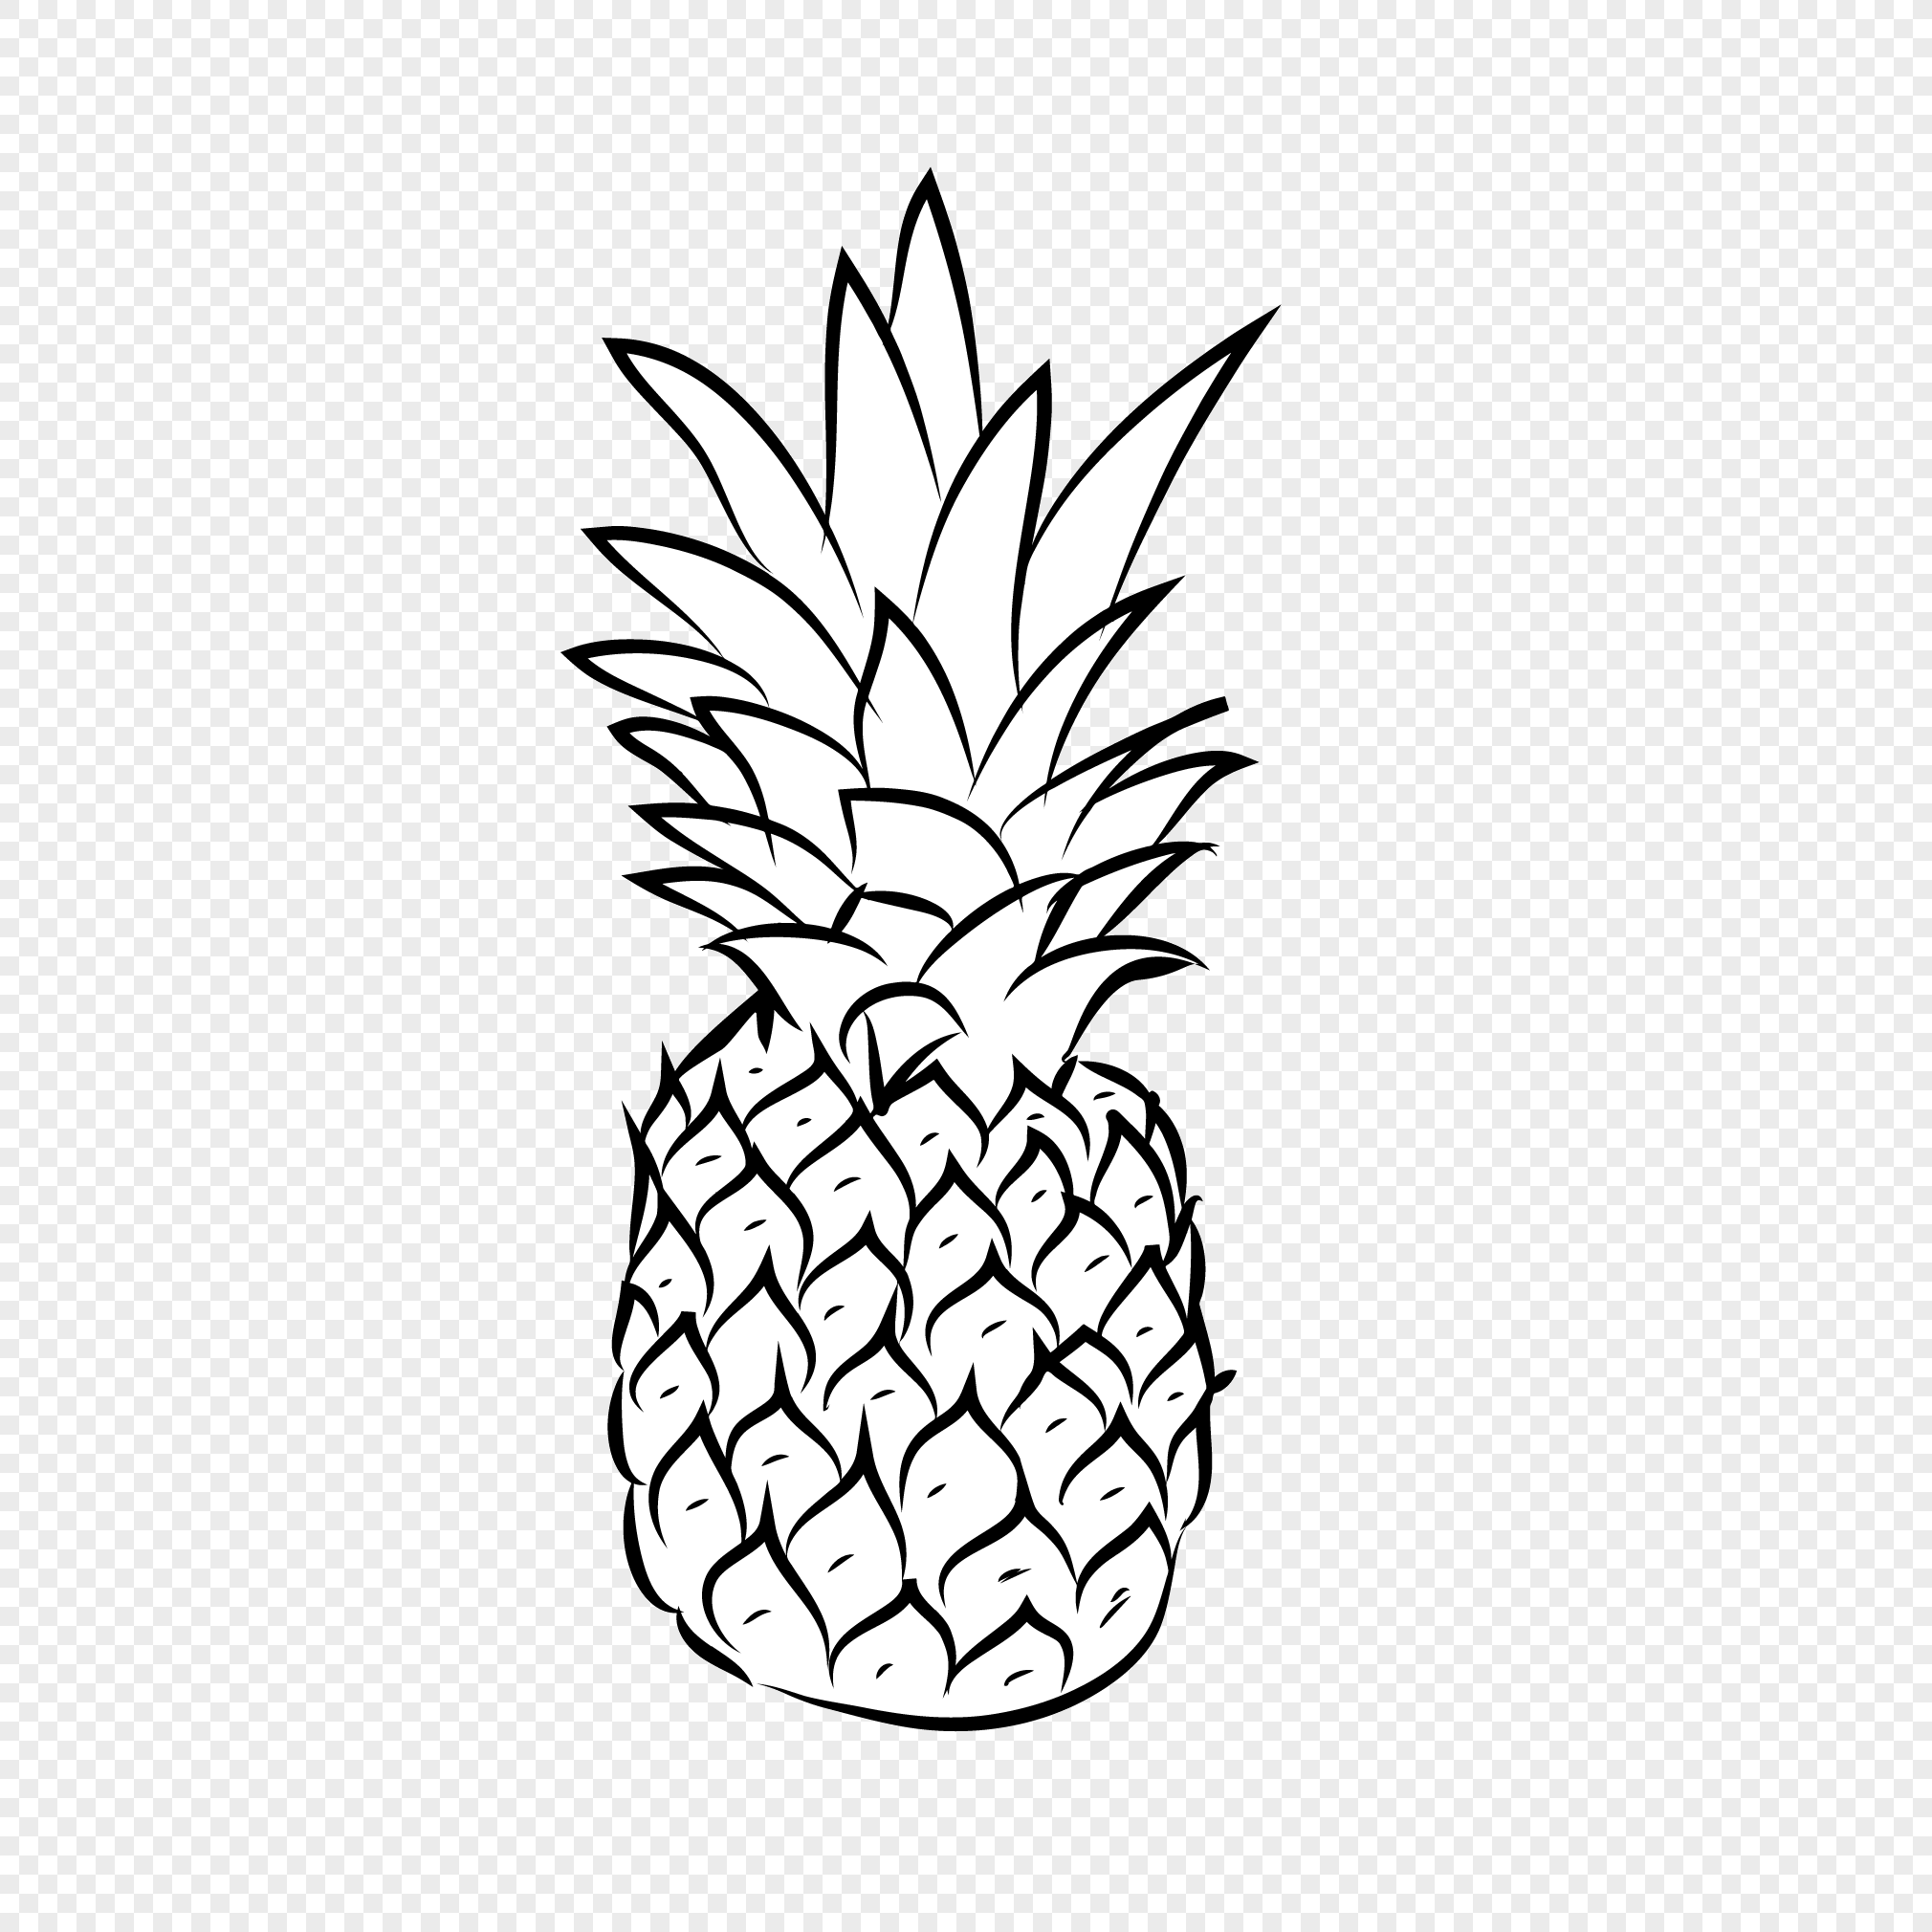 pineapple line drawing how to draw a pineapple step by step very easy and fast line pineapple drawing